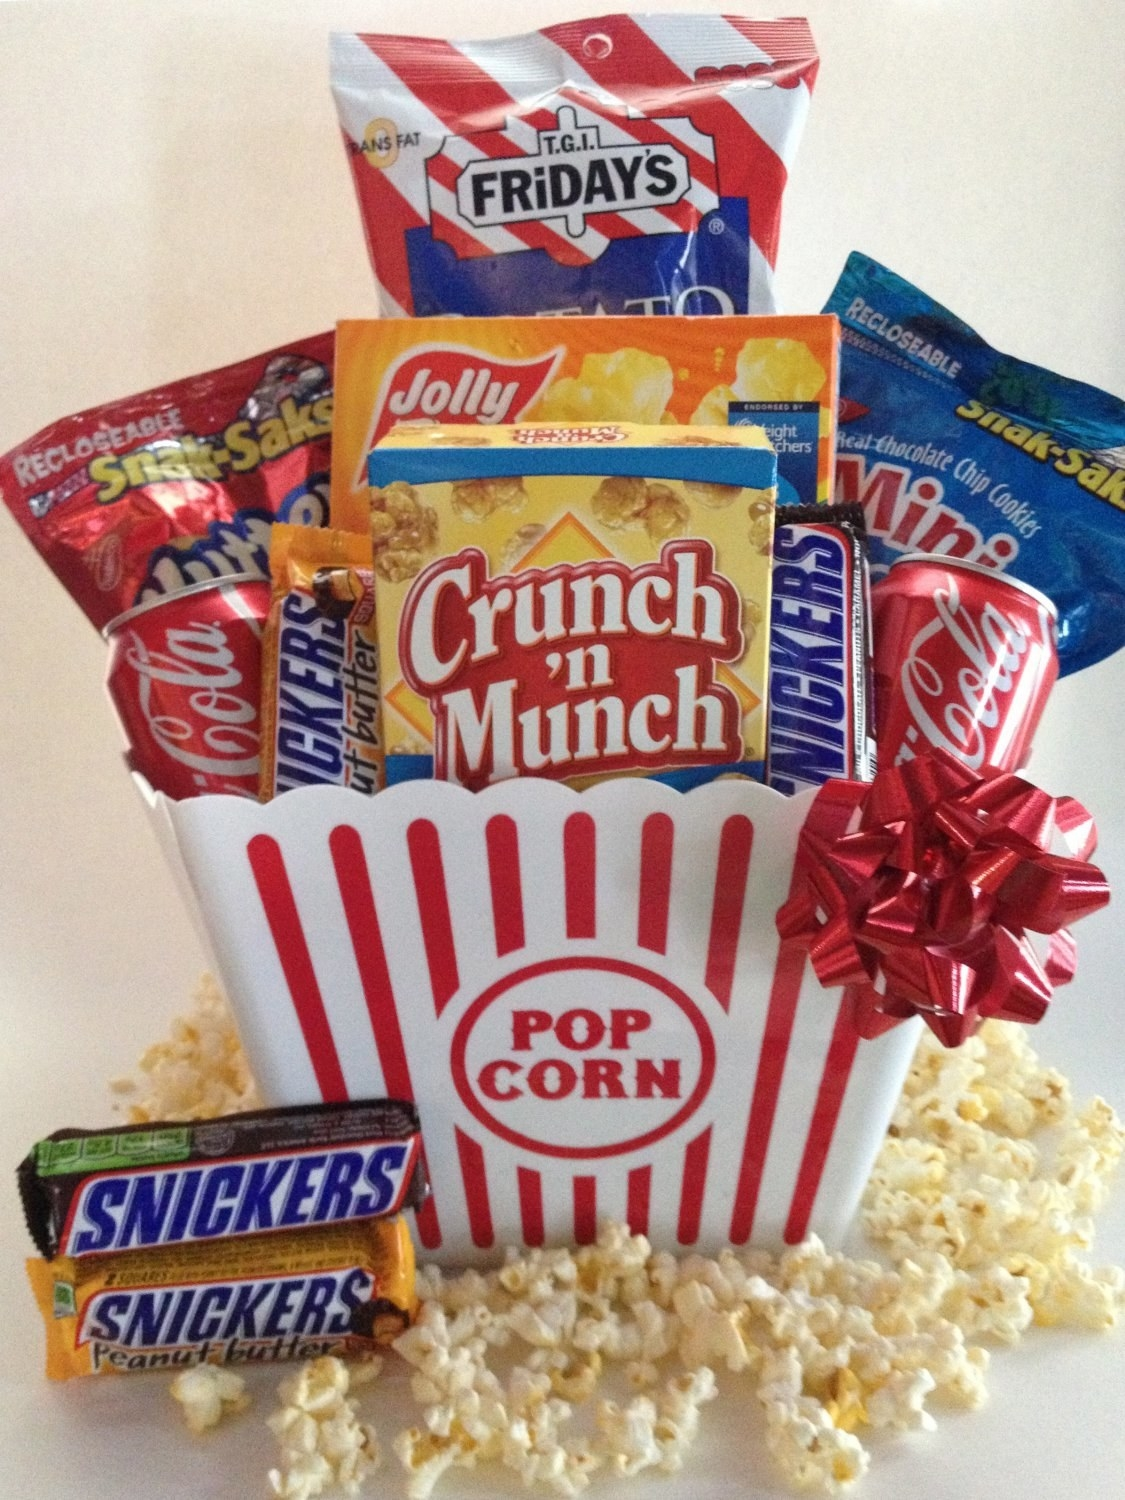 Each snack set comes with a variety of candy, popcorn, and cookies with a reusable plastic popcorn box (made especially for reaching into at the same time and accidentally holding hands). Price: $26.95